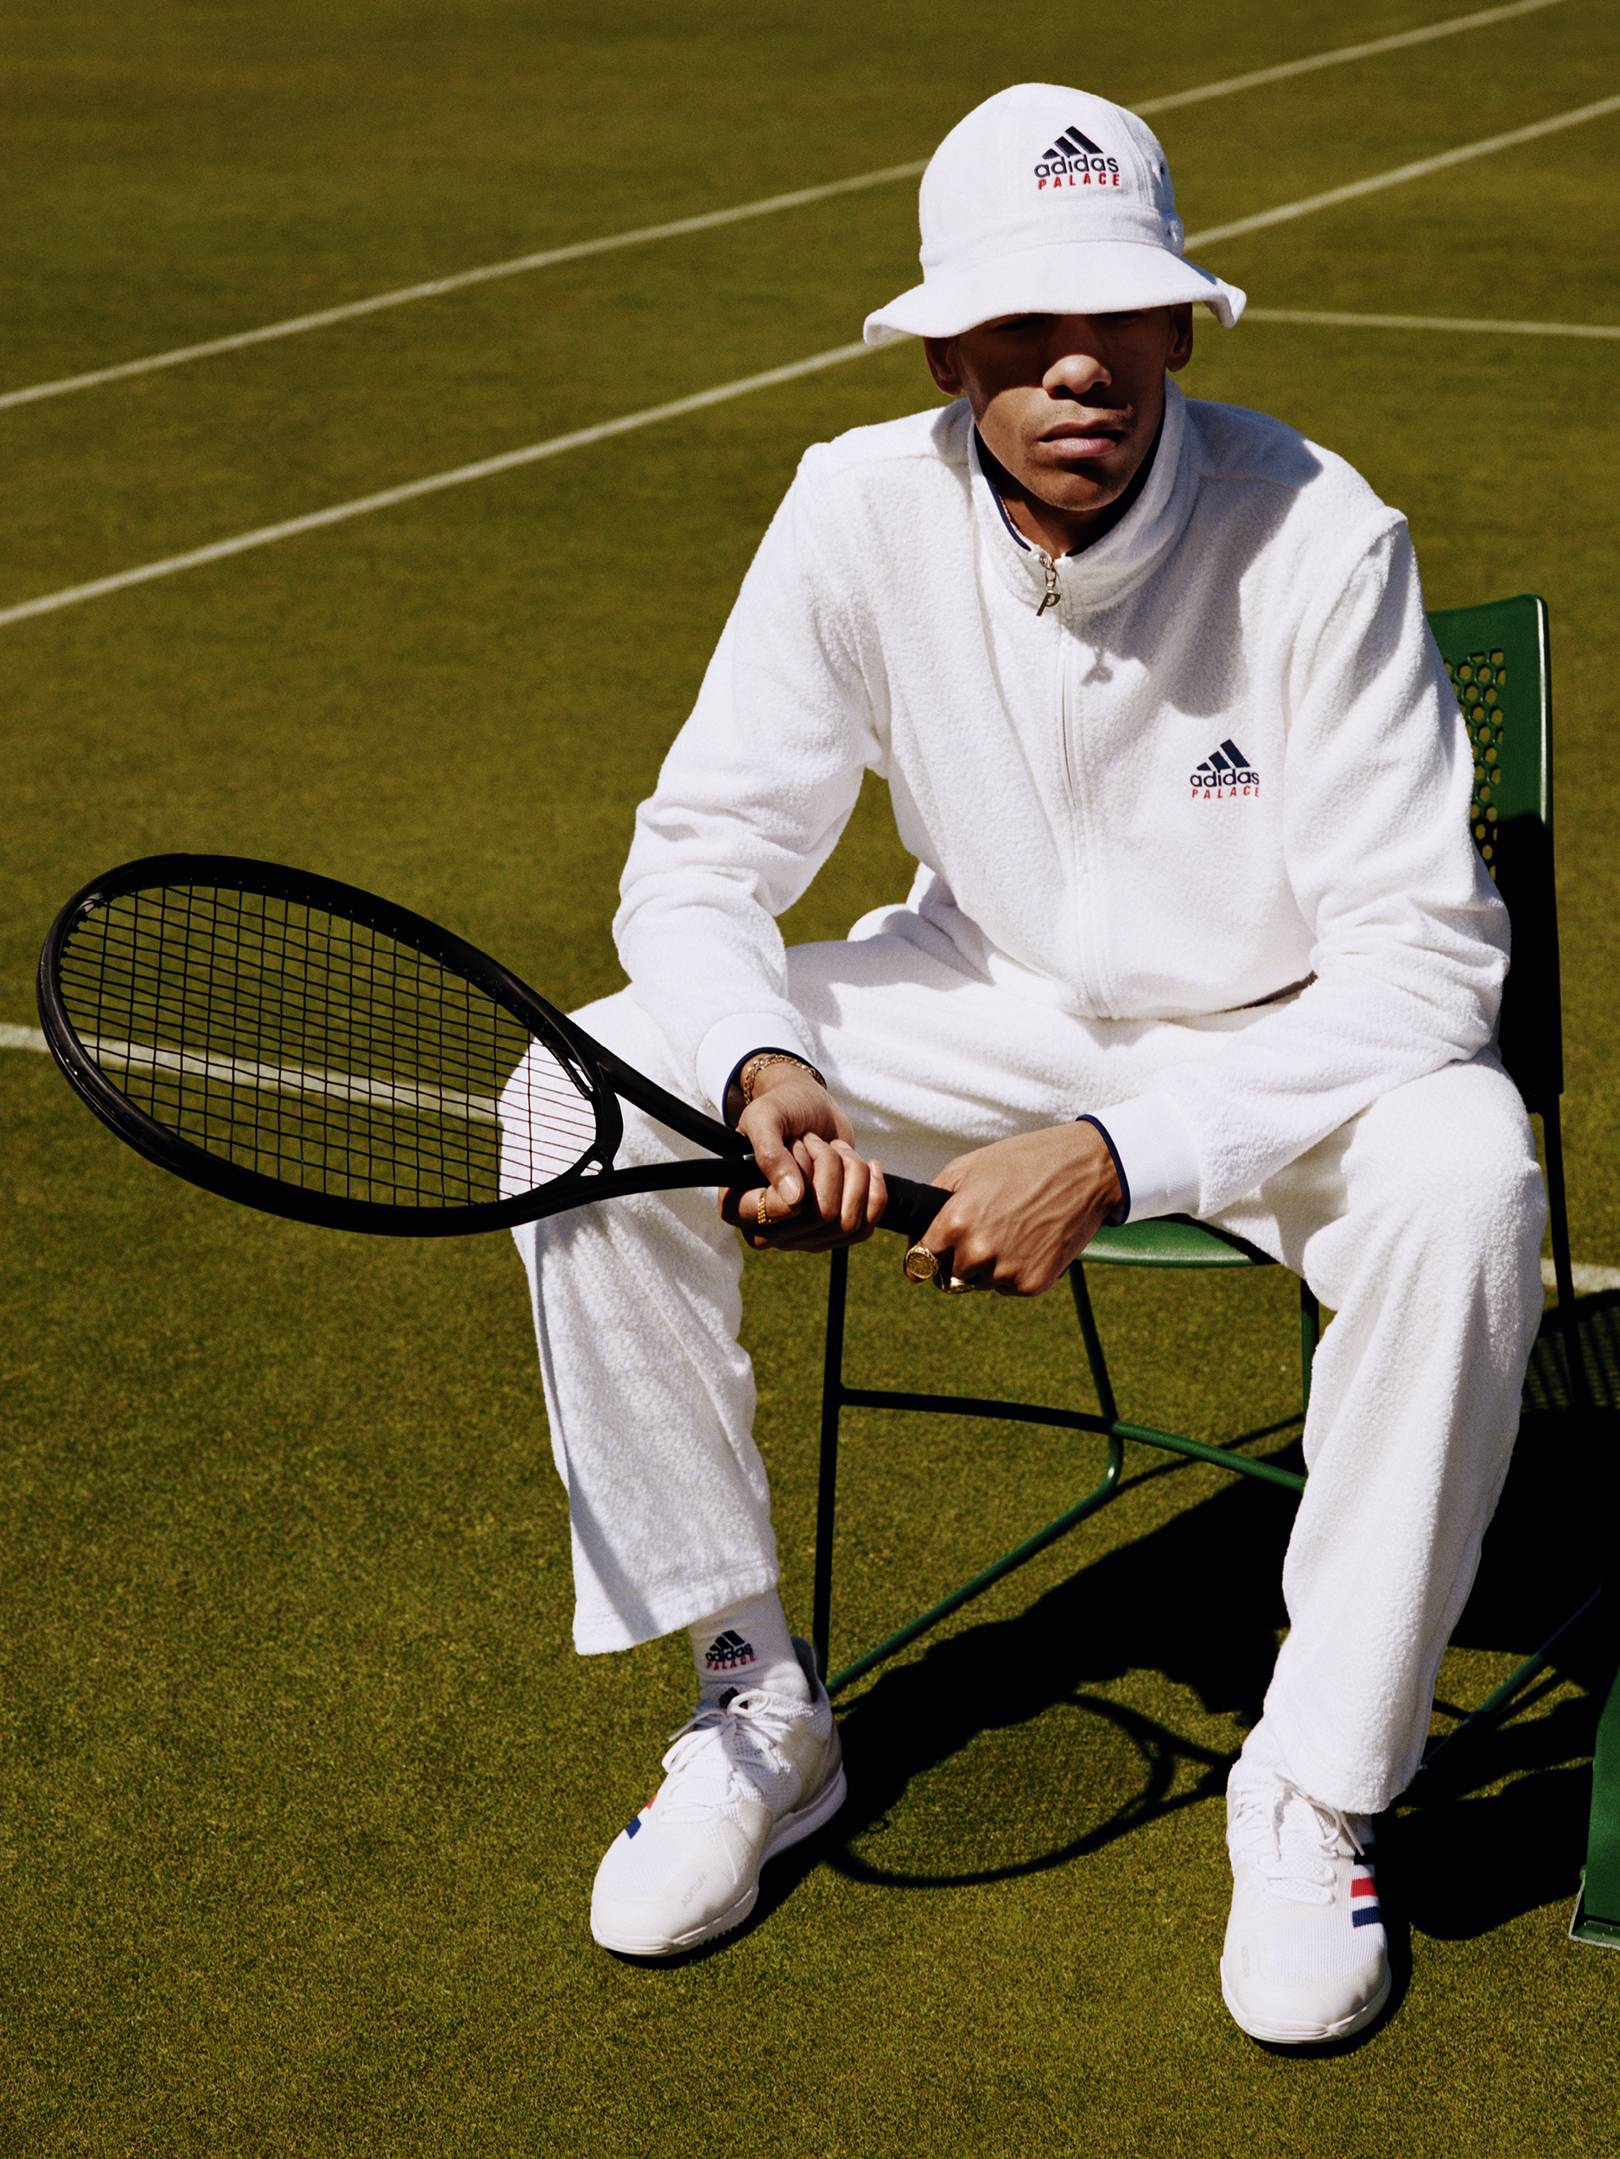 fbec28e6a2d08 Adidas And Palace Team Up For Tennis Collection